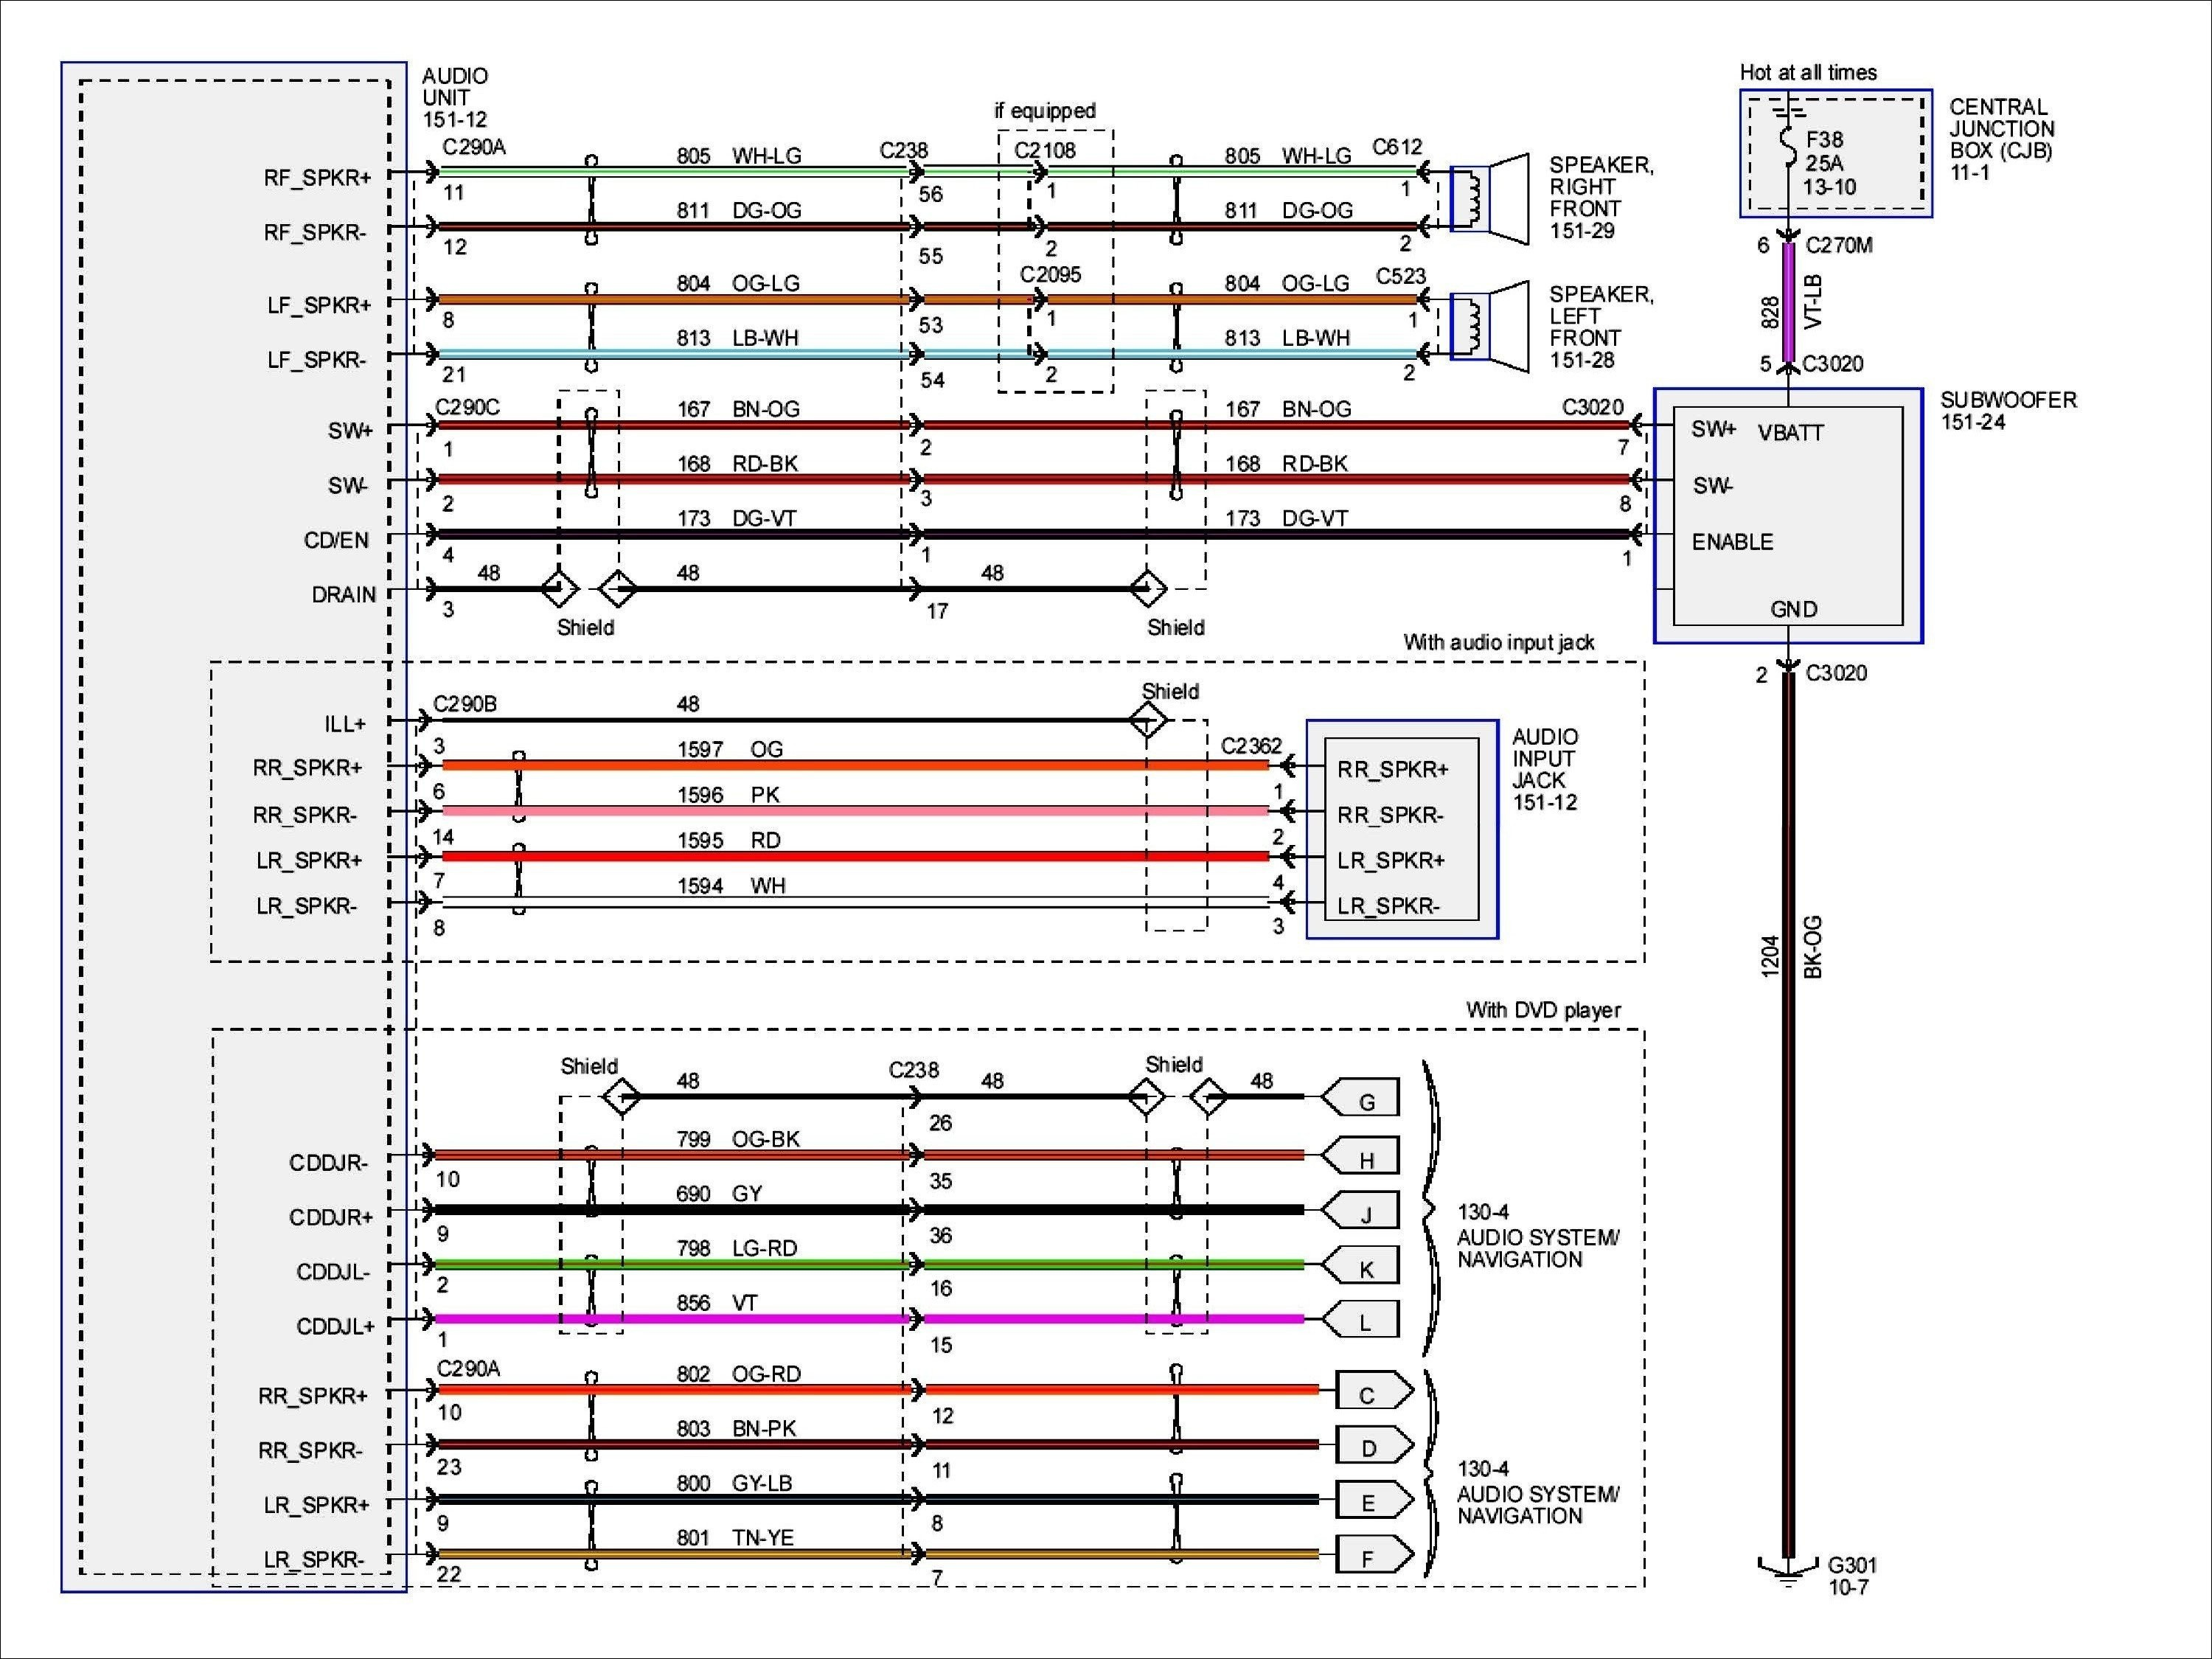 2008 Dodge Ram 2500 Stereo Wiring Diagram Wiring Diagrams Post Theory Indor A Theory Indor A Michelegori It